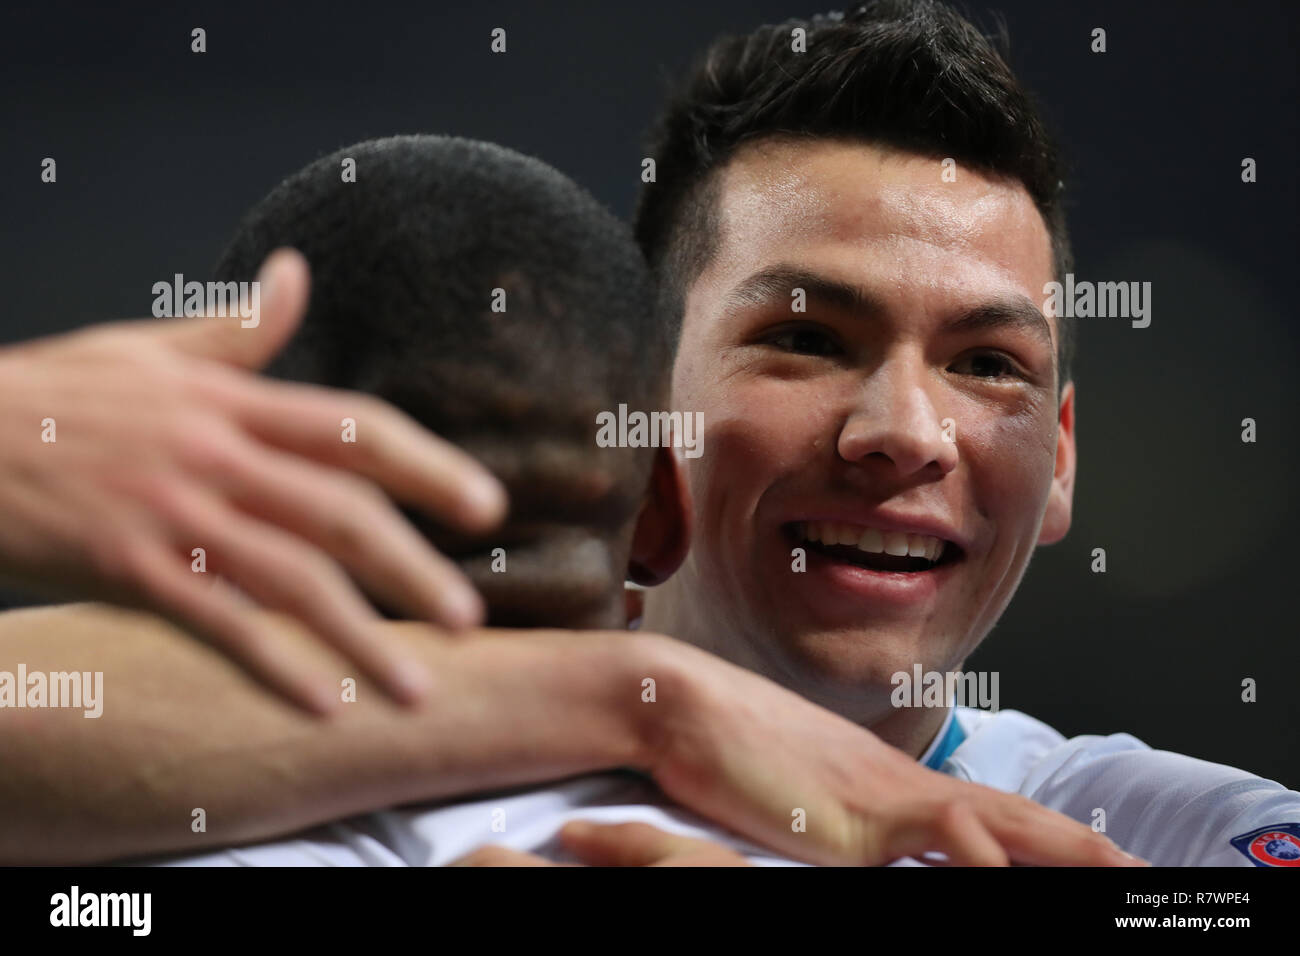 Milan, Italy. 11th Dec, 2018. PSV Eindhoven's Hirving Lozano (R) celebrates a goal during a Group B match of the UEFA Champions League between FC Inter and PSV Eindhoven in Milan, Italy, Dec. 11, 2018. The match ended with 1-1. Credit: Cheng Tingting/Xinhua/Alamy Live News Stock Photo